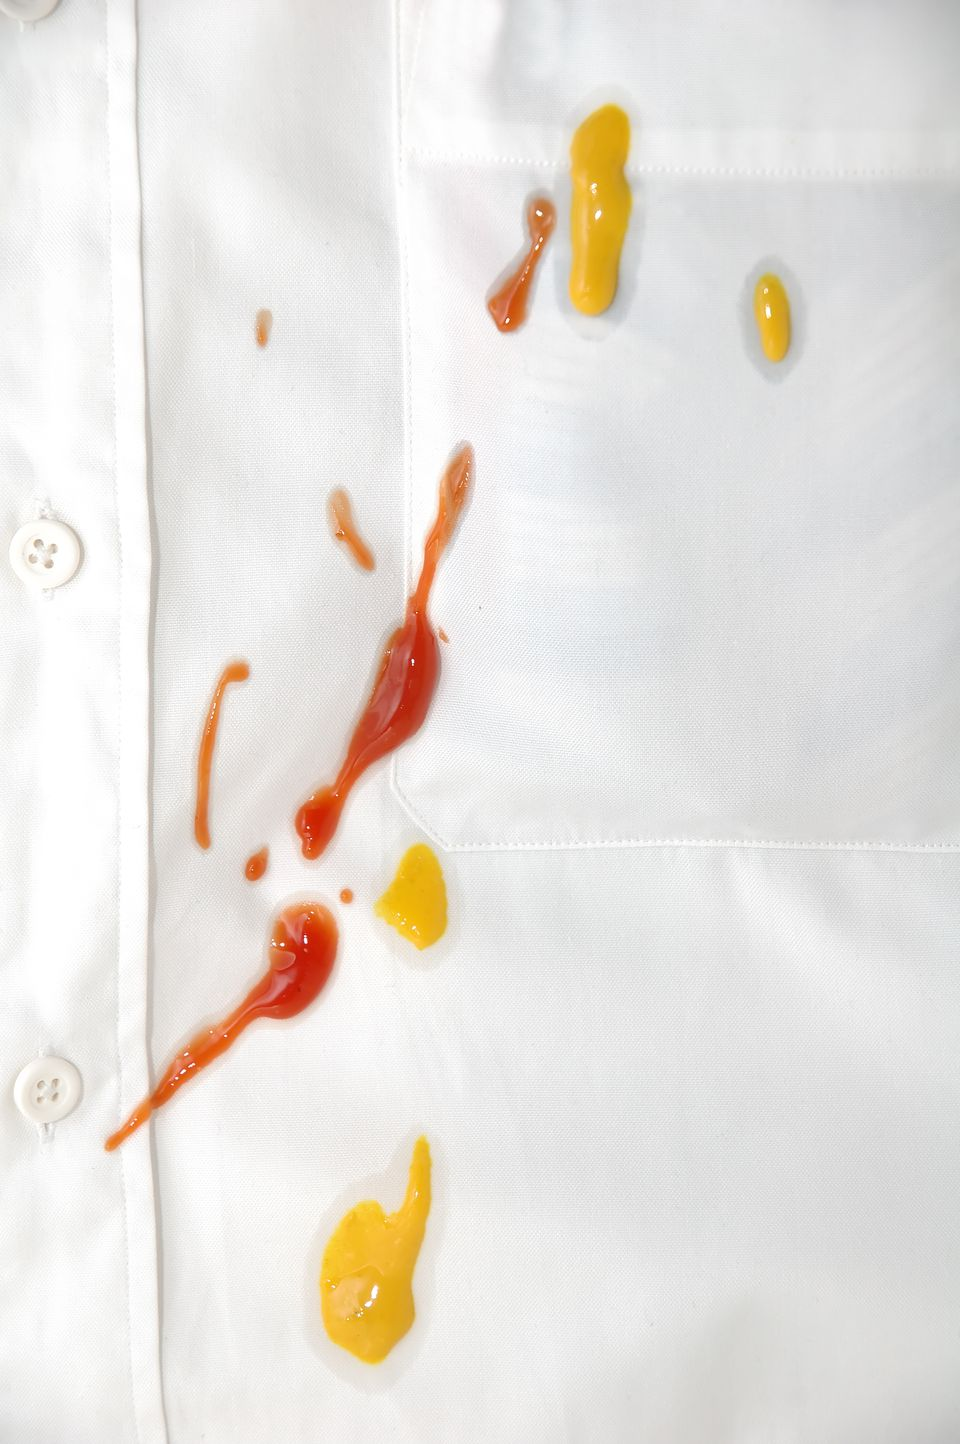 Removing Fresh Mustard Stains: Washable Fibers